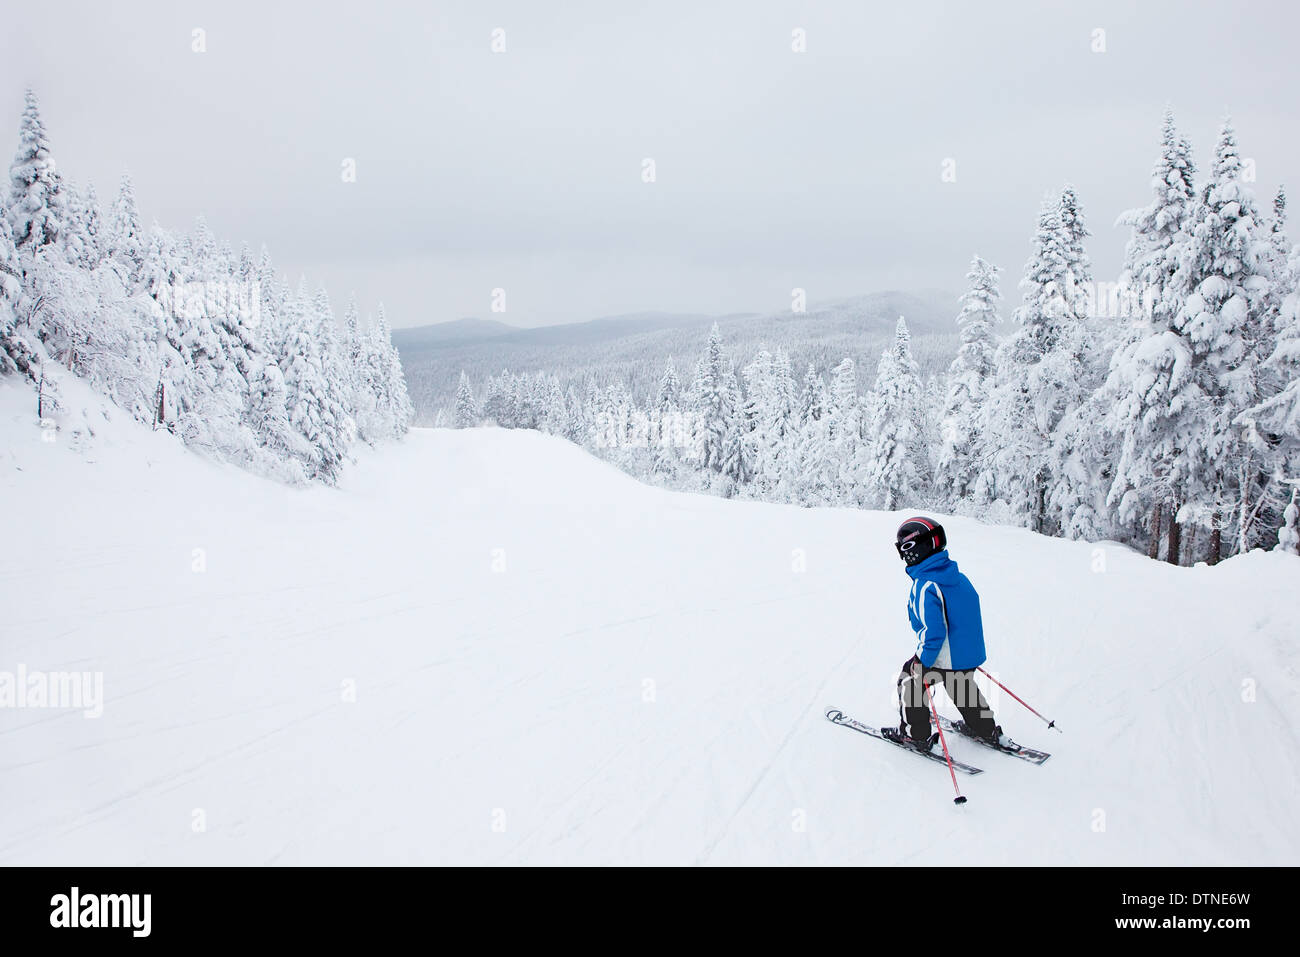 Mont-Tremblant, Canada - February 9, 2014: A boy is skiing down an easy slope at Mont-Tremblant. - Stock Image